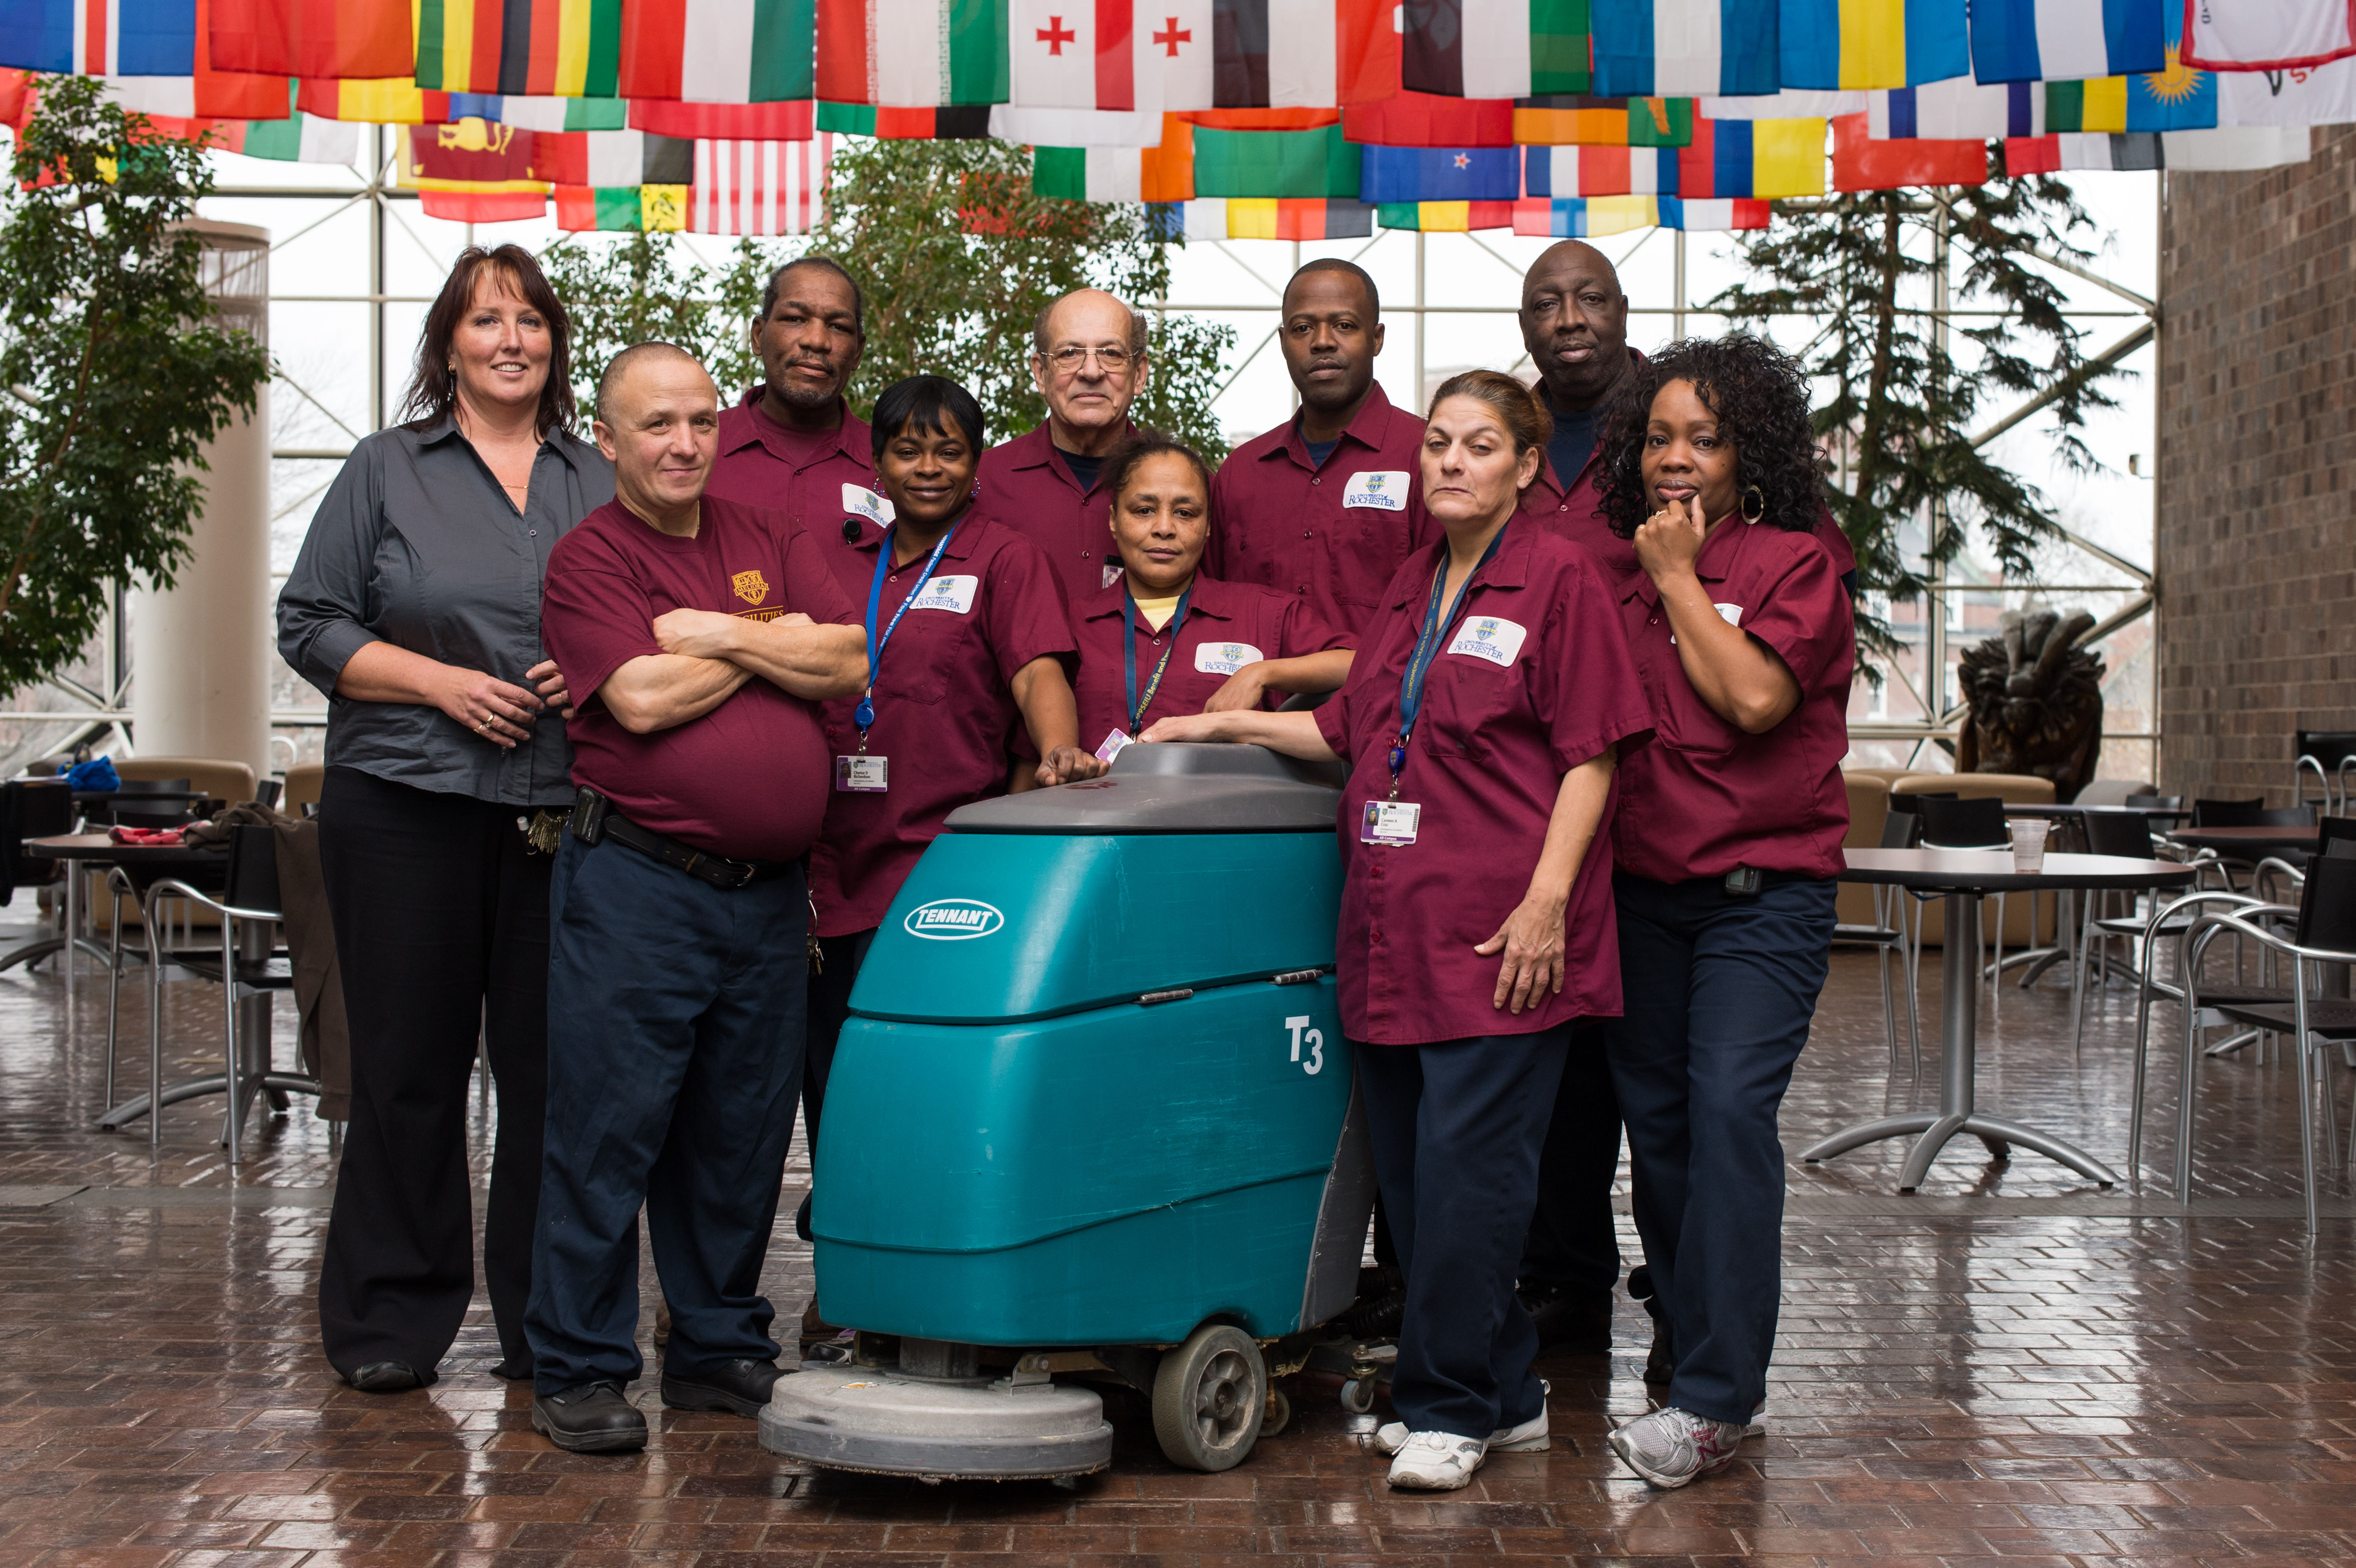 RC Environmental Services shown left to right; Area Supervisor Dorrene London, Environmental Service Workers Bobby Lazzara, Dennis Lee, Cherise Richardson, Leo Hodge, Marian Hill, Ron Jefferson, Carmen Cruz, Willie Kearny, and Robin Haten pose with a Tennant T3+ Auto Scrubber. Photo by J. Adam Fenster.